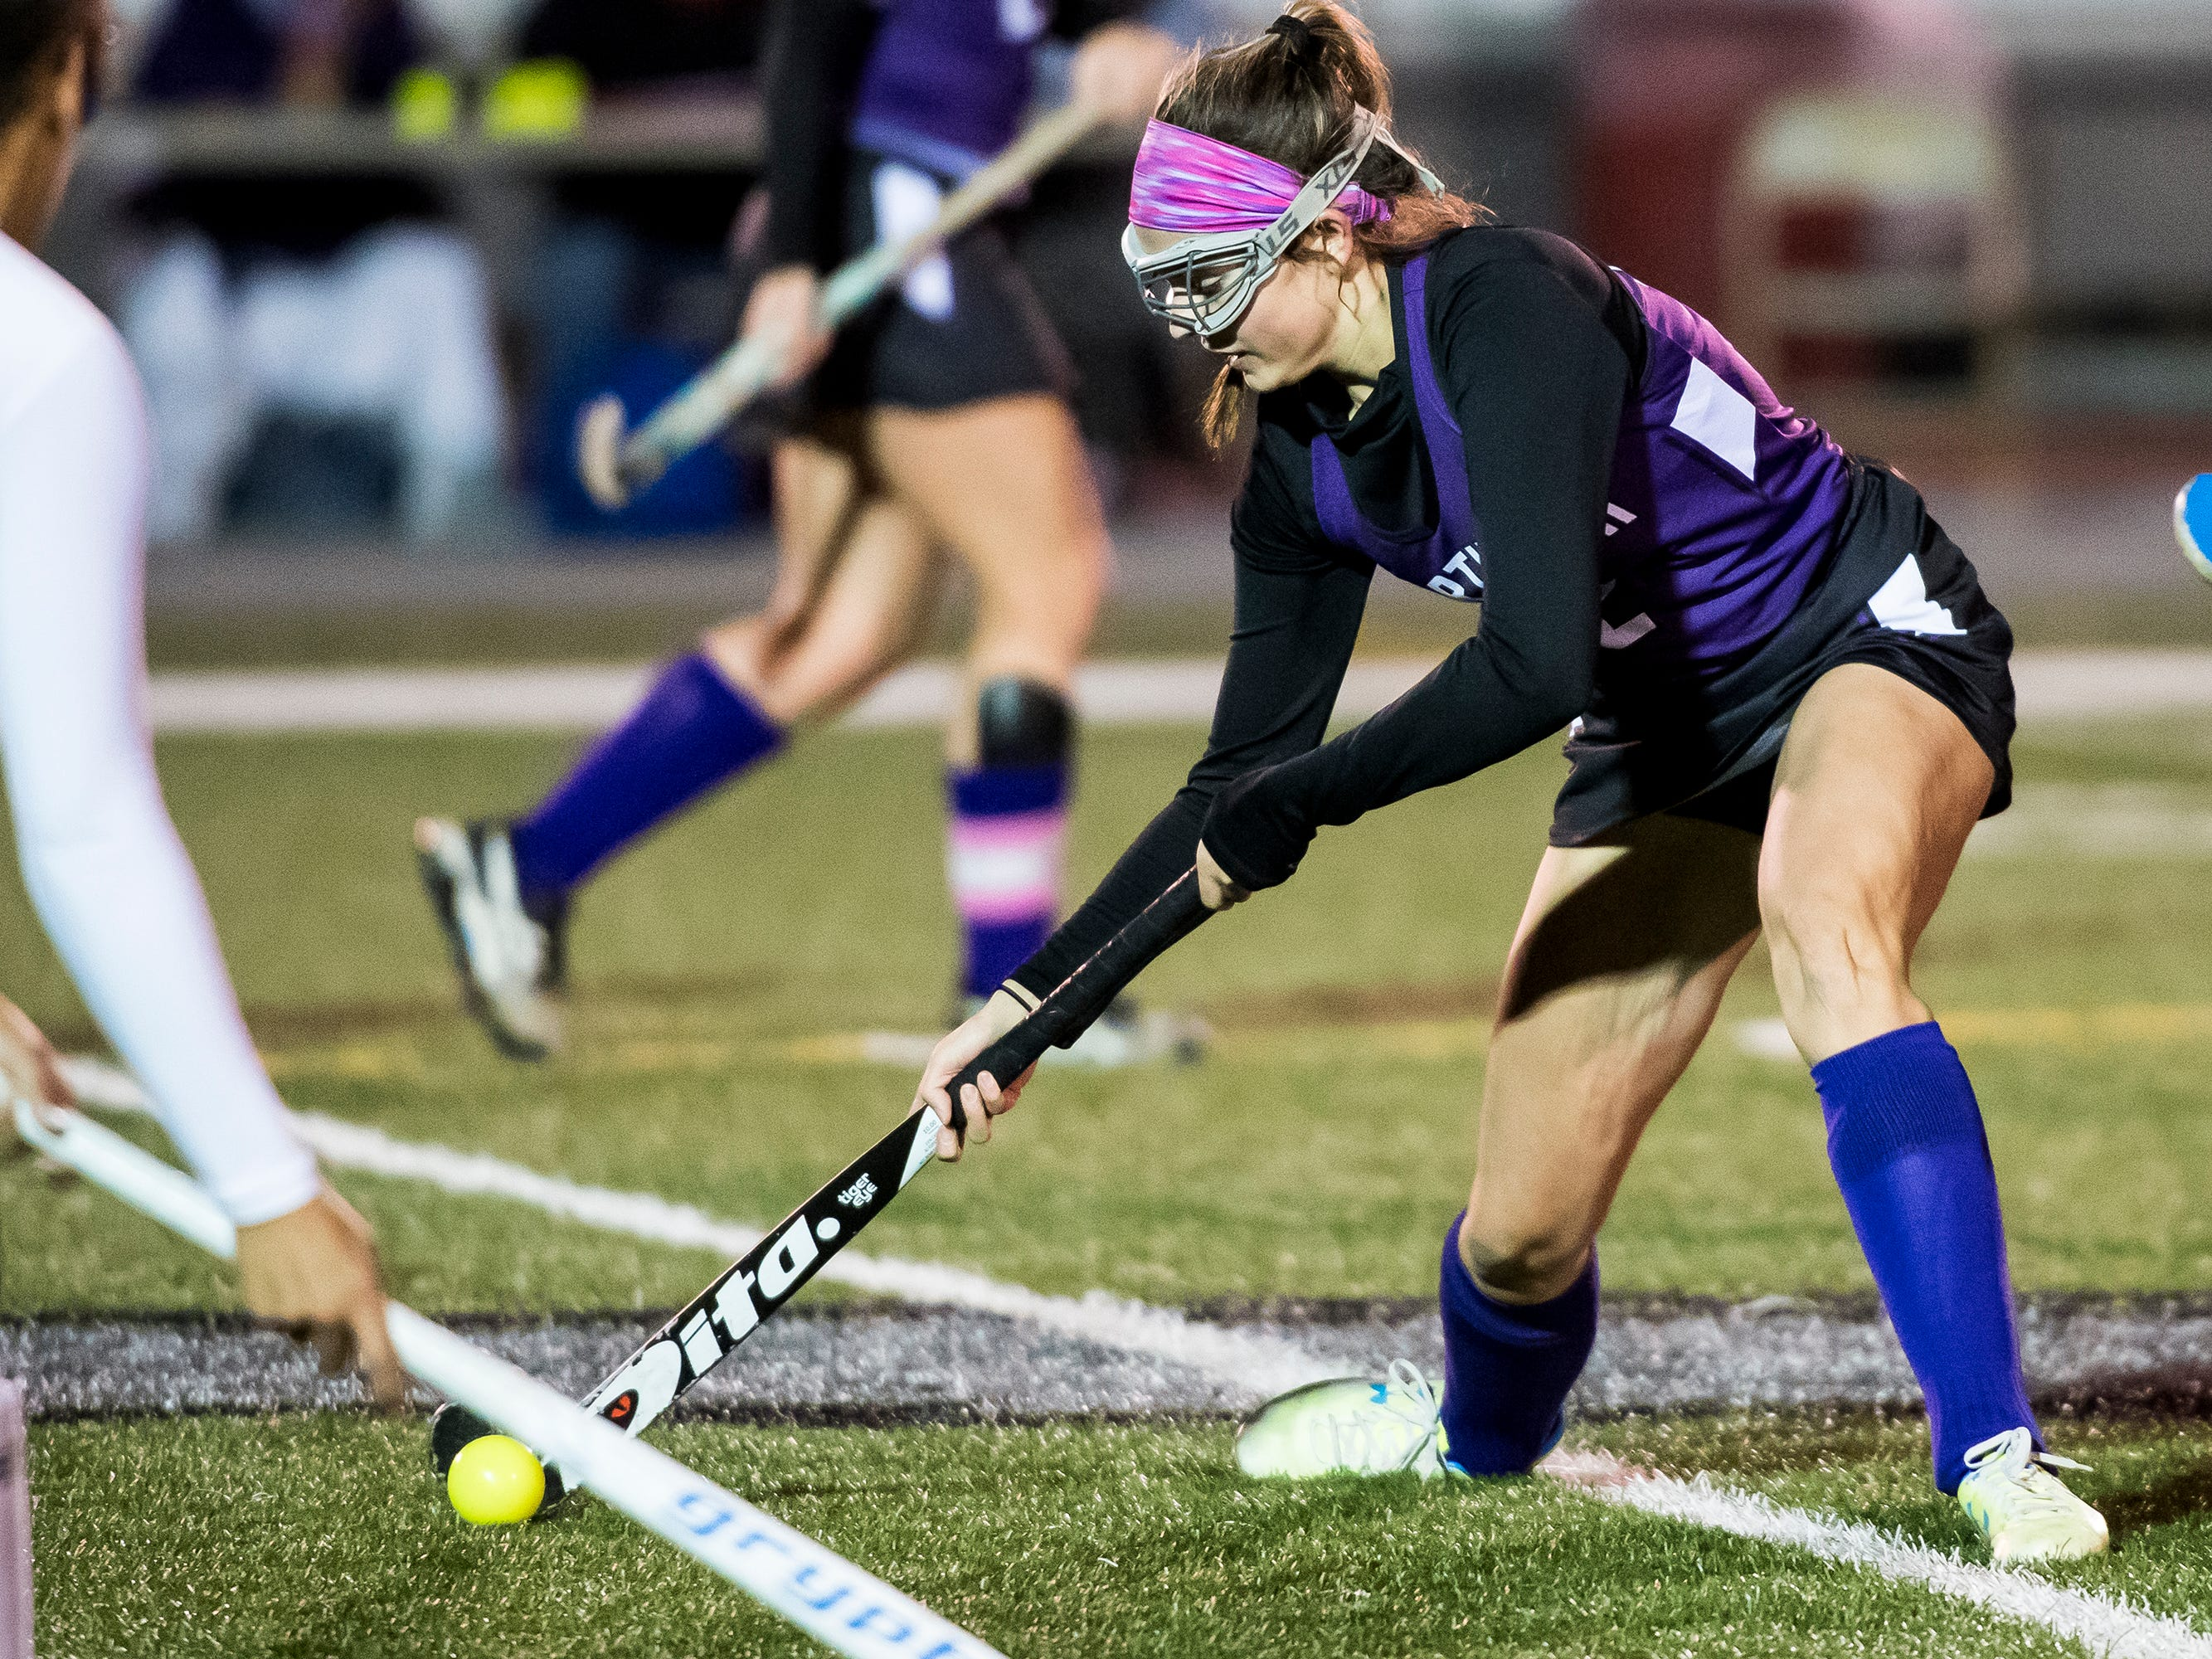 Northern's Alexandra McCurdy hits the ball during play against South Western in a PIAA District III first round game at Bermudian Springs High School on Wednesday, October 24, 2018. The Mustangs fell 4-2.